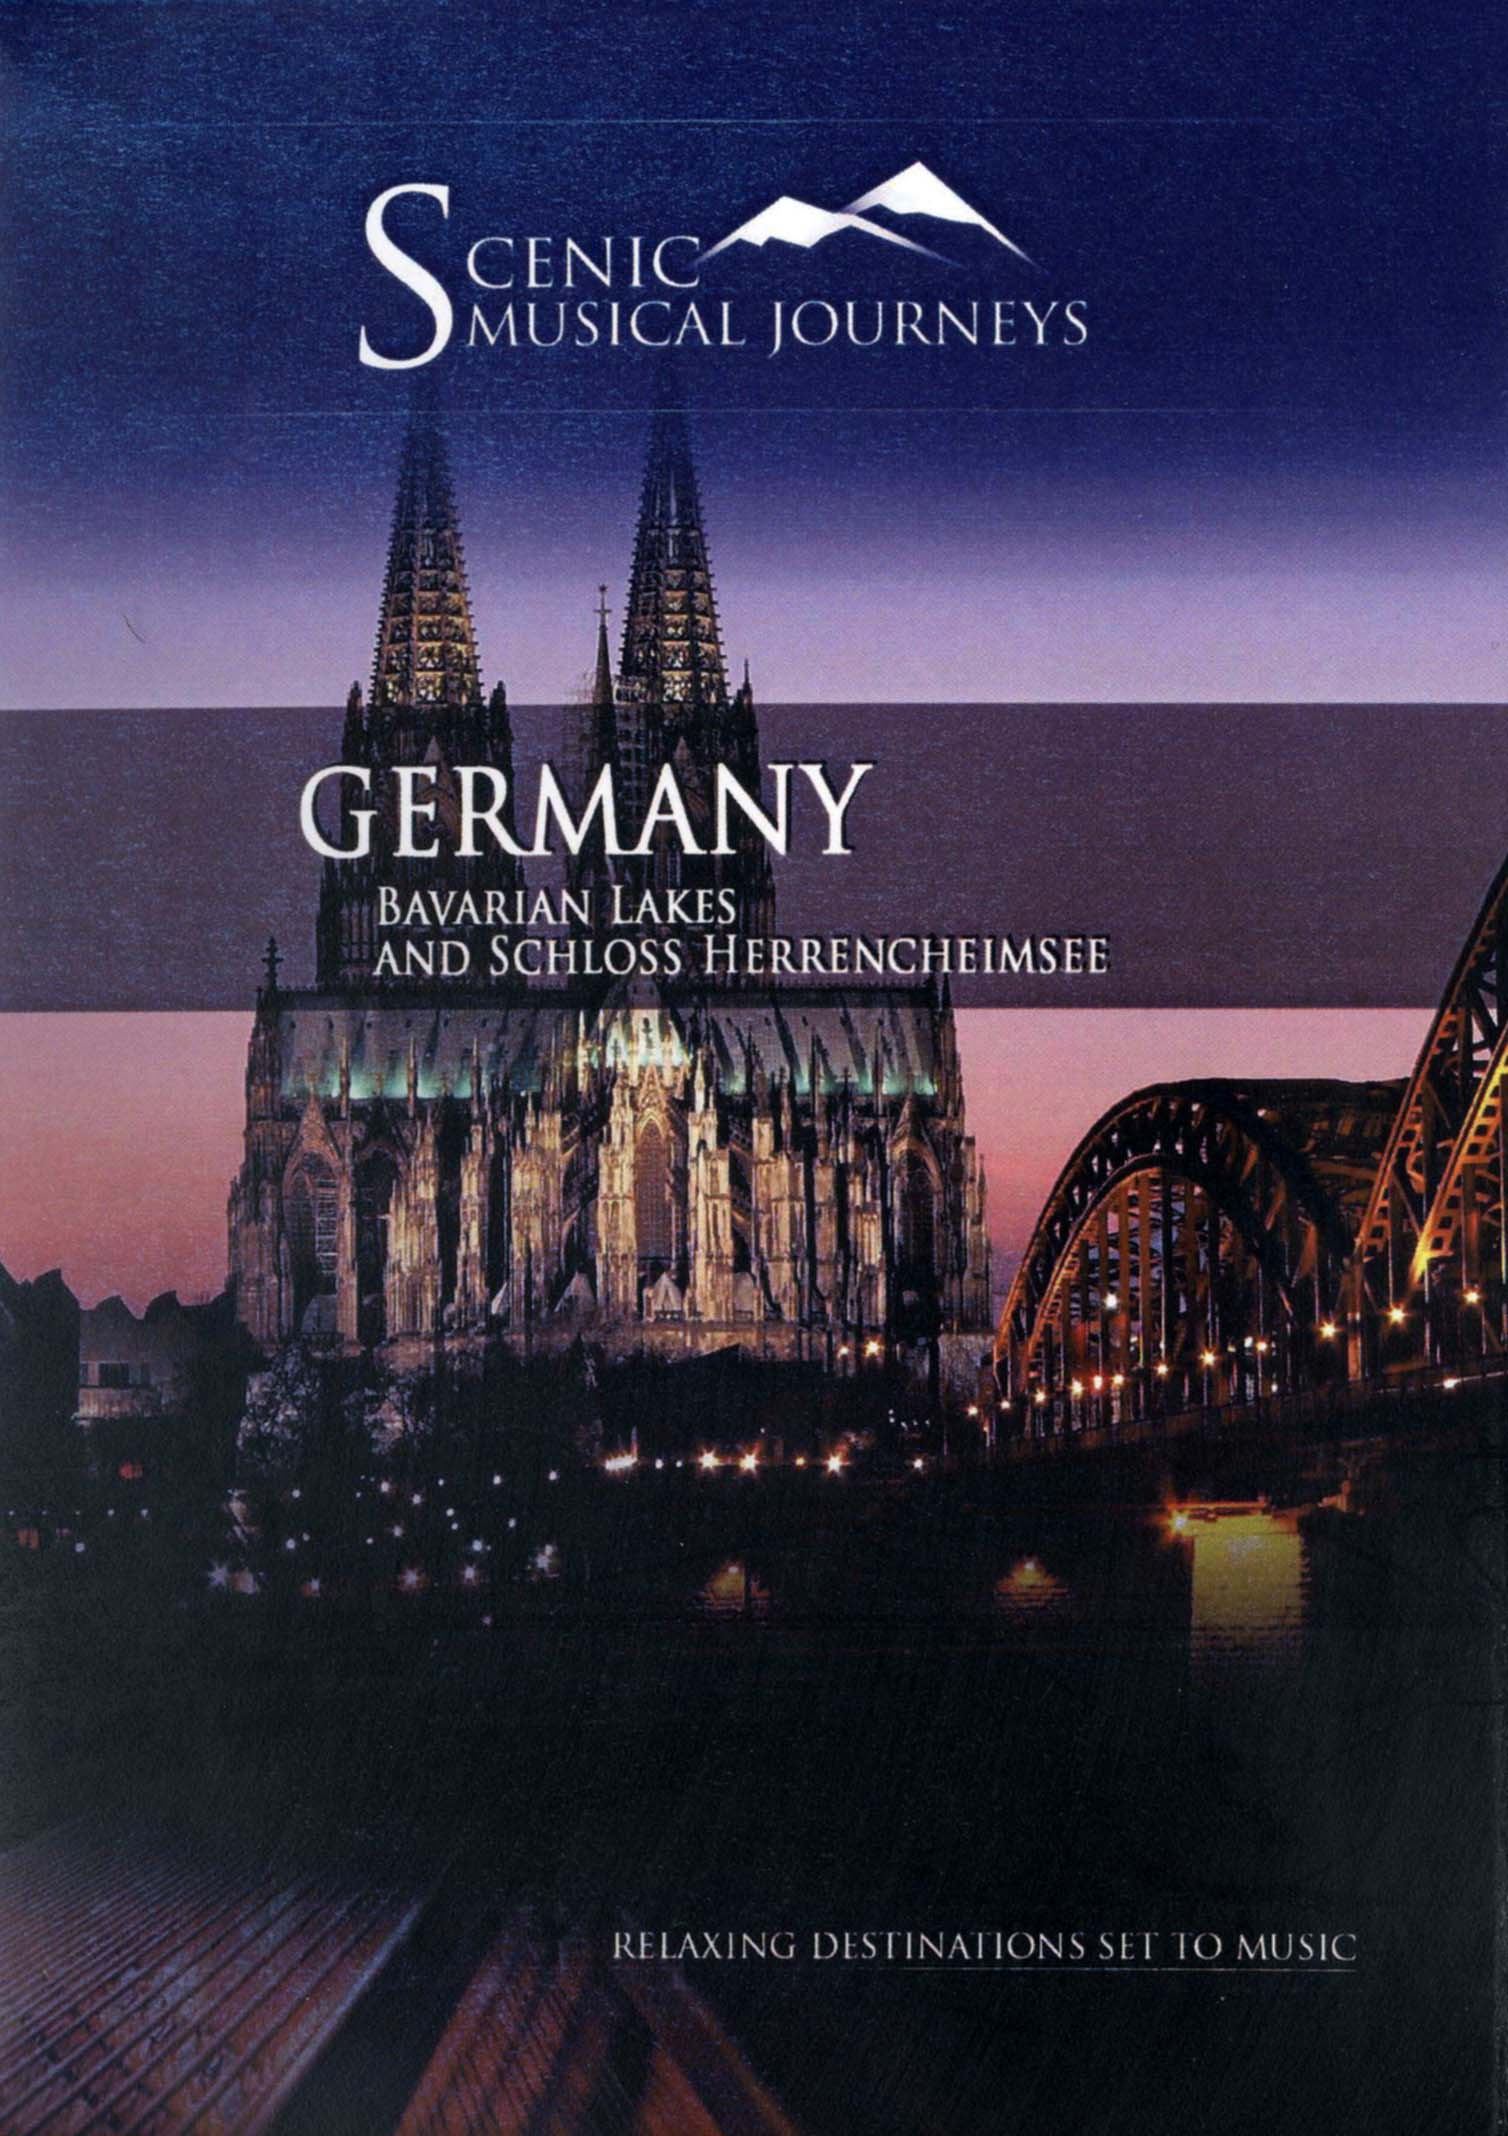 Scenic Musical Journeys: Germany- Bavarian Lakes and Schloss Herrencheimsee